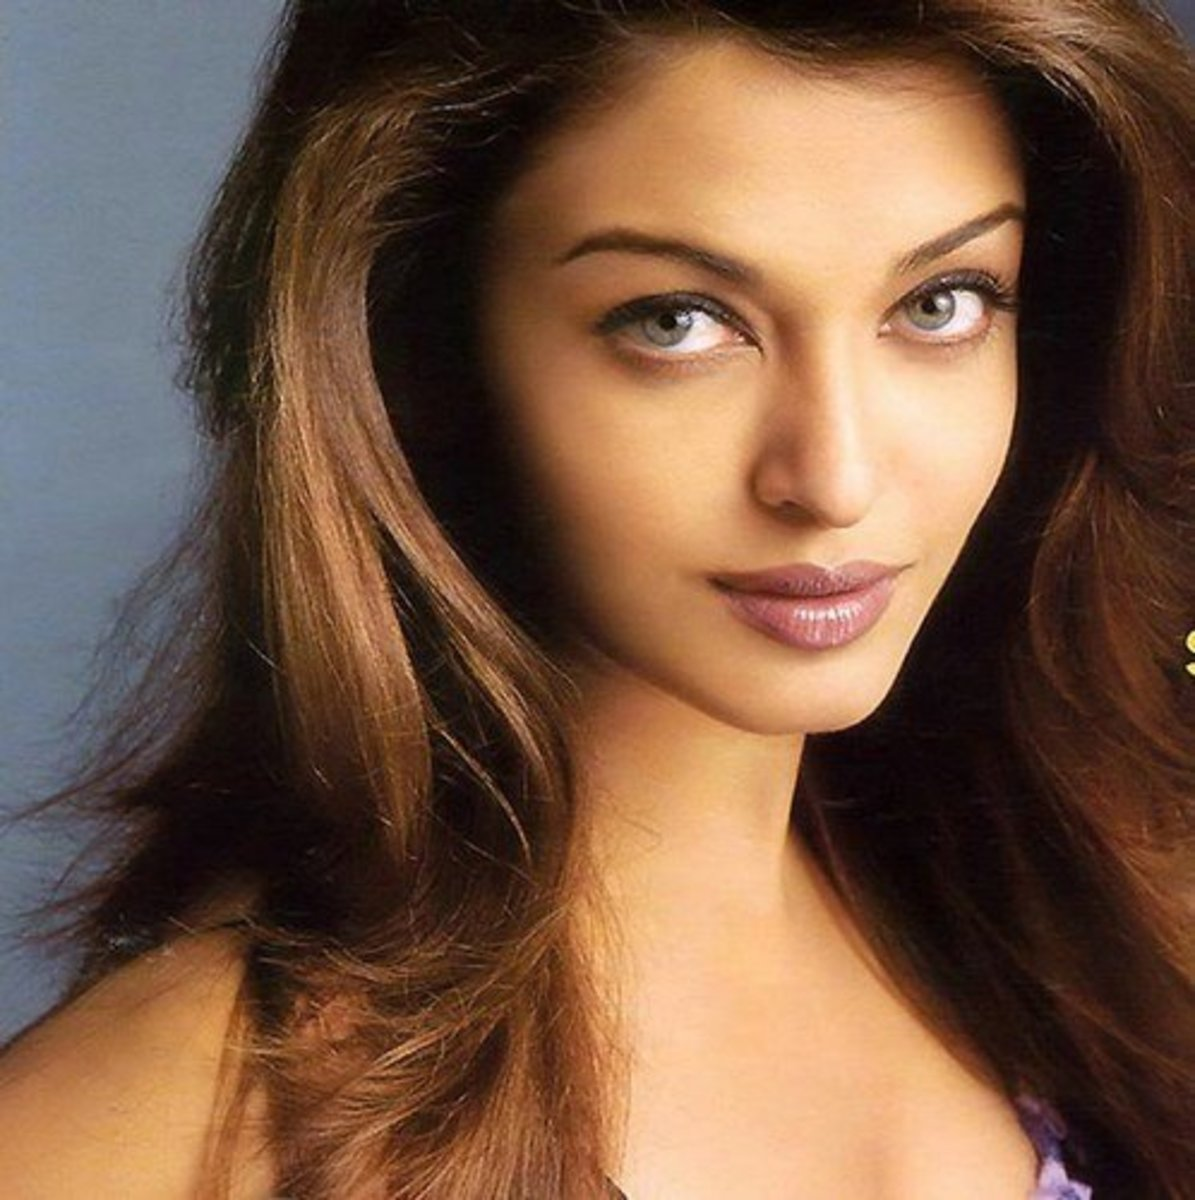 Bollywood Actress Hairstyles For Women, Long Hairstyle 2011, Hairstyle 2011, New Long Hairstyle 2011, Celebrity Long Hairstyles 2038